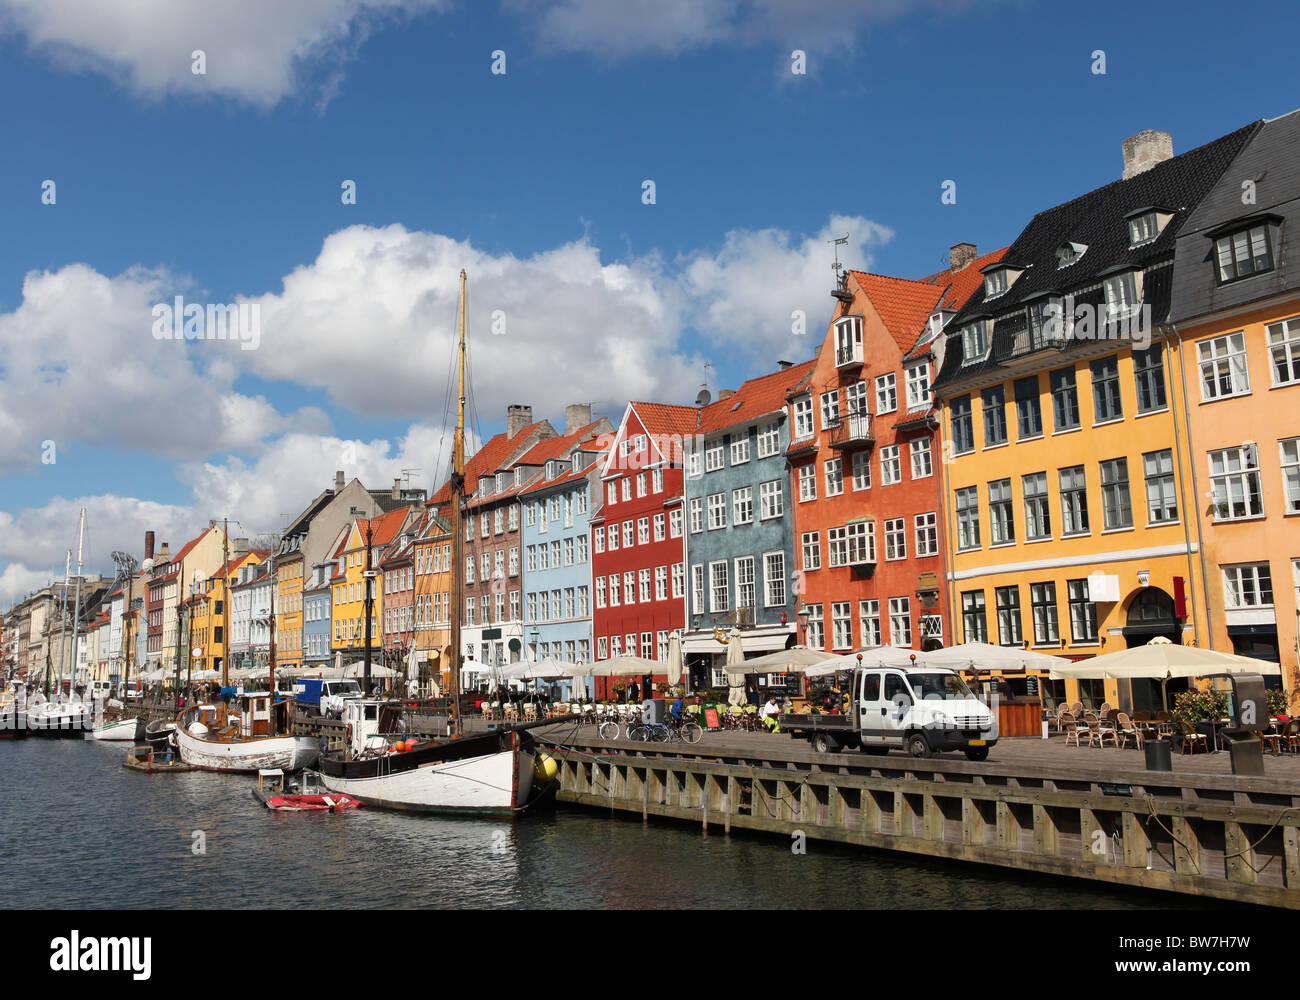 Nyhavn in Copenhagen, Denmark - one of the most popular tourist places - Stock Image